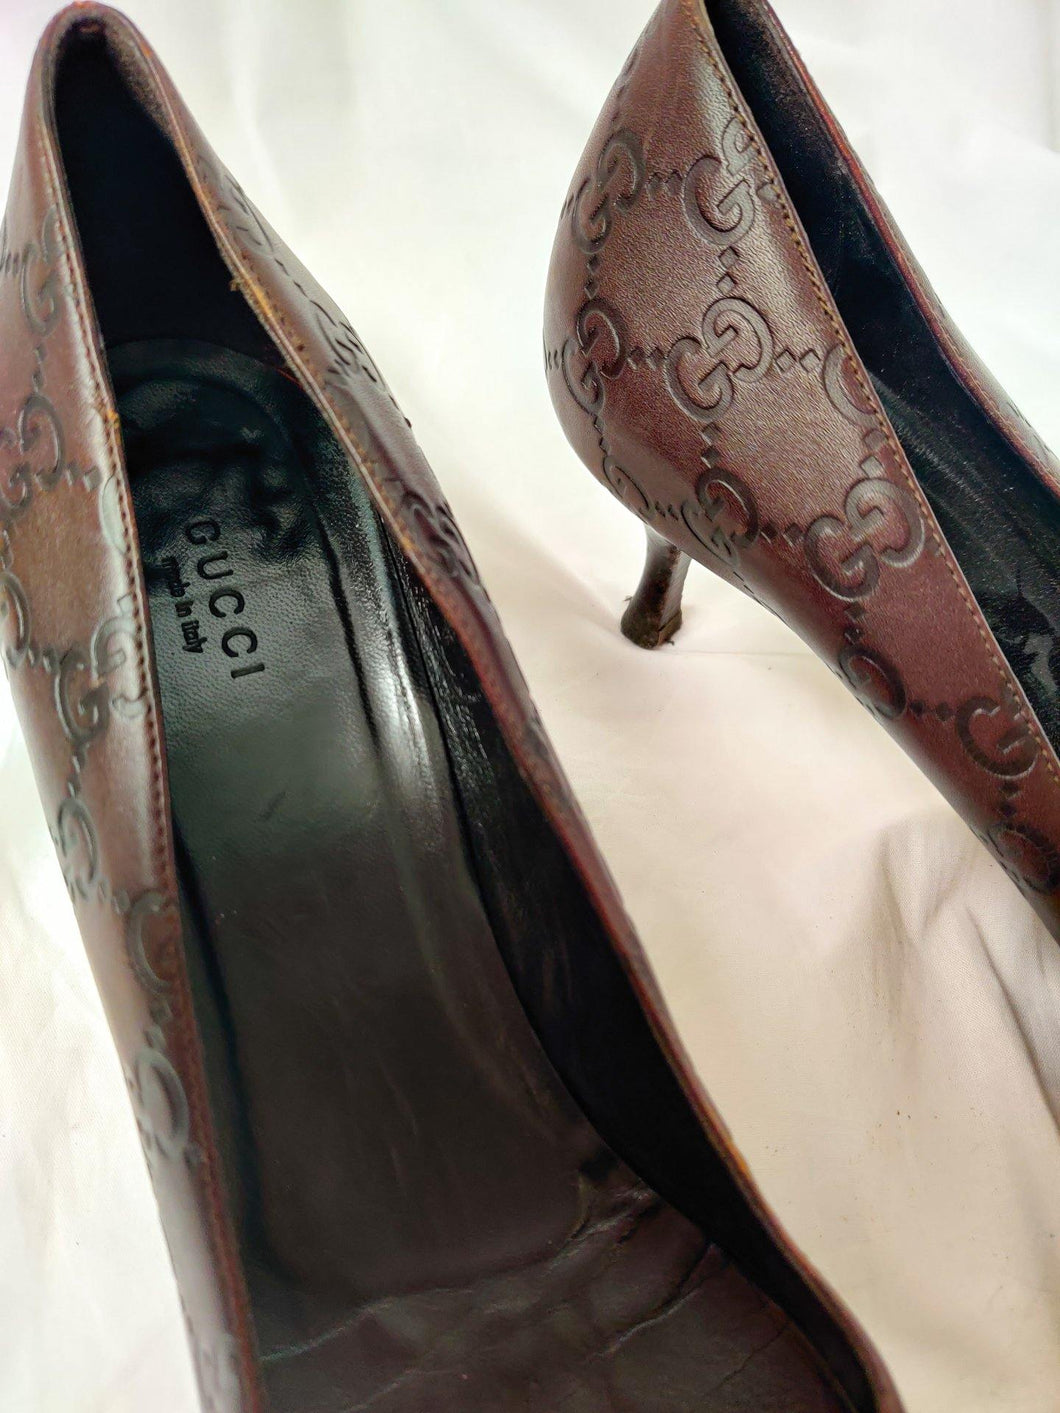 Vintage Gucci monogram leather heels in brown/maroon shade.